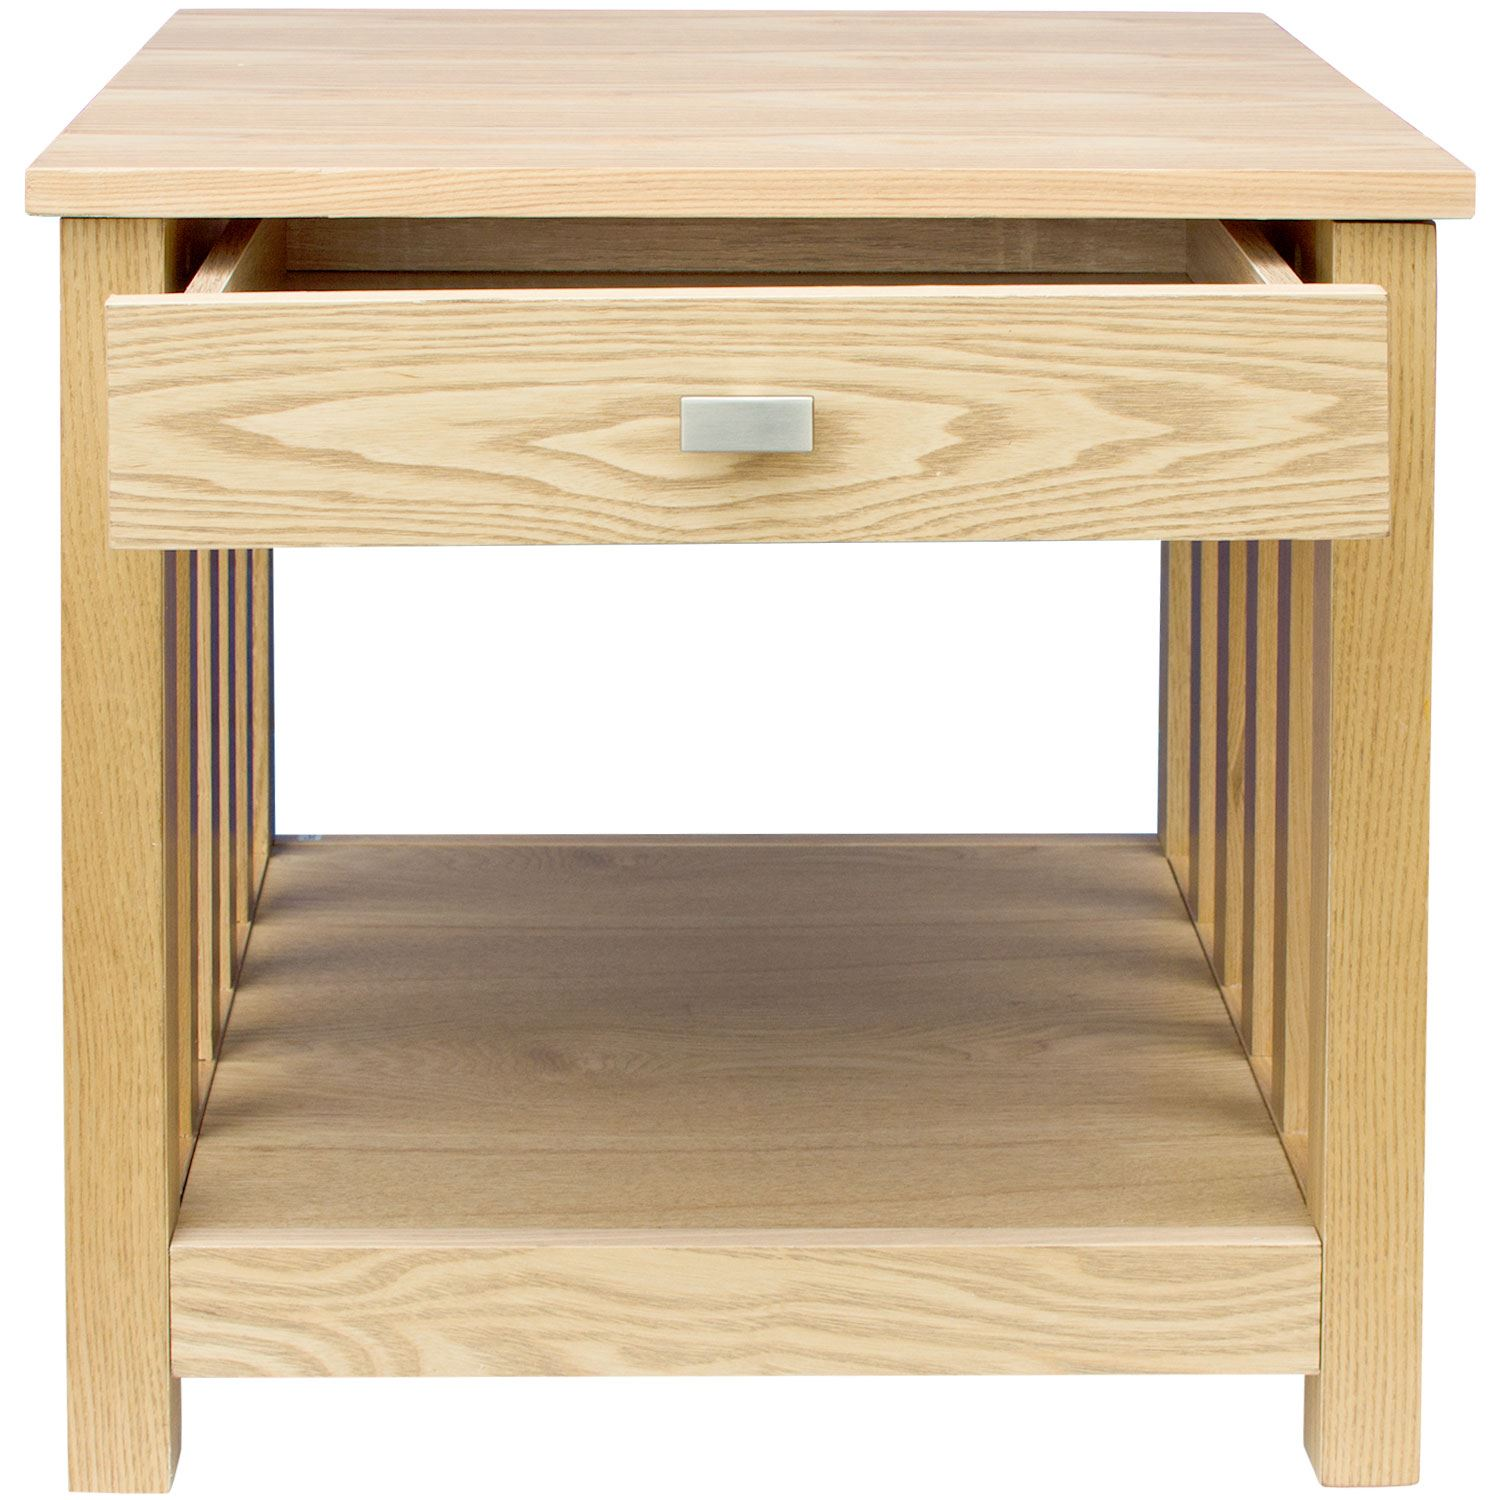 Ashton 1 Drawer Lamp Side Table Bedside Cabinet Furniture New By Home Discount Ebay